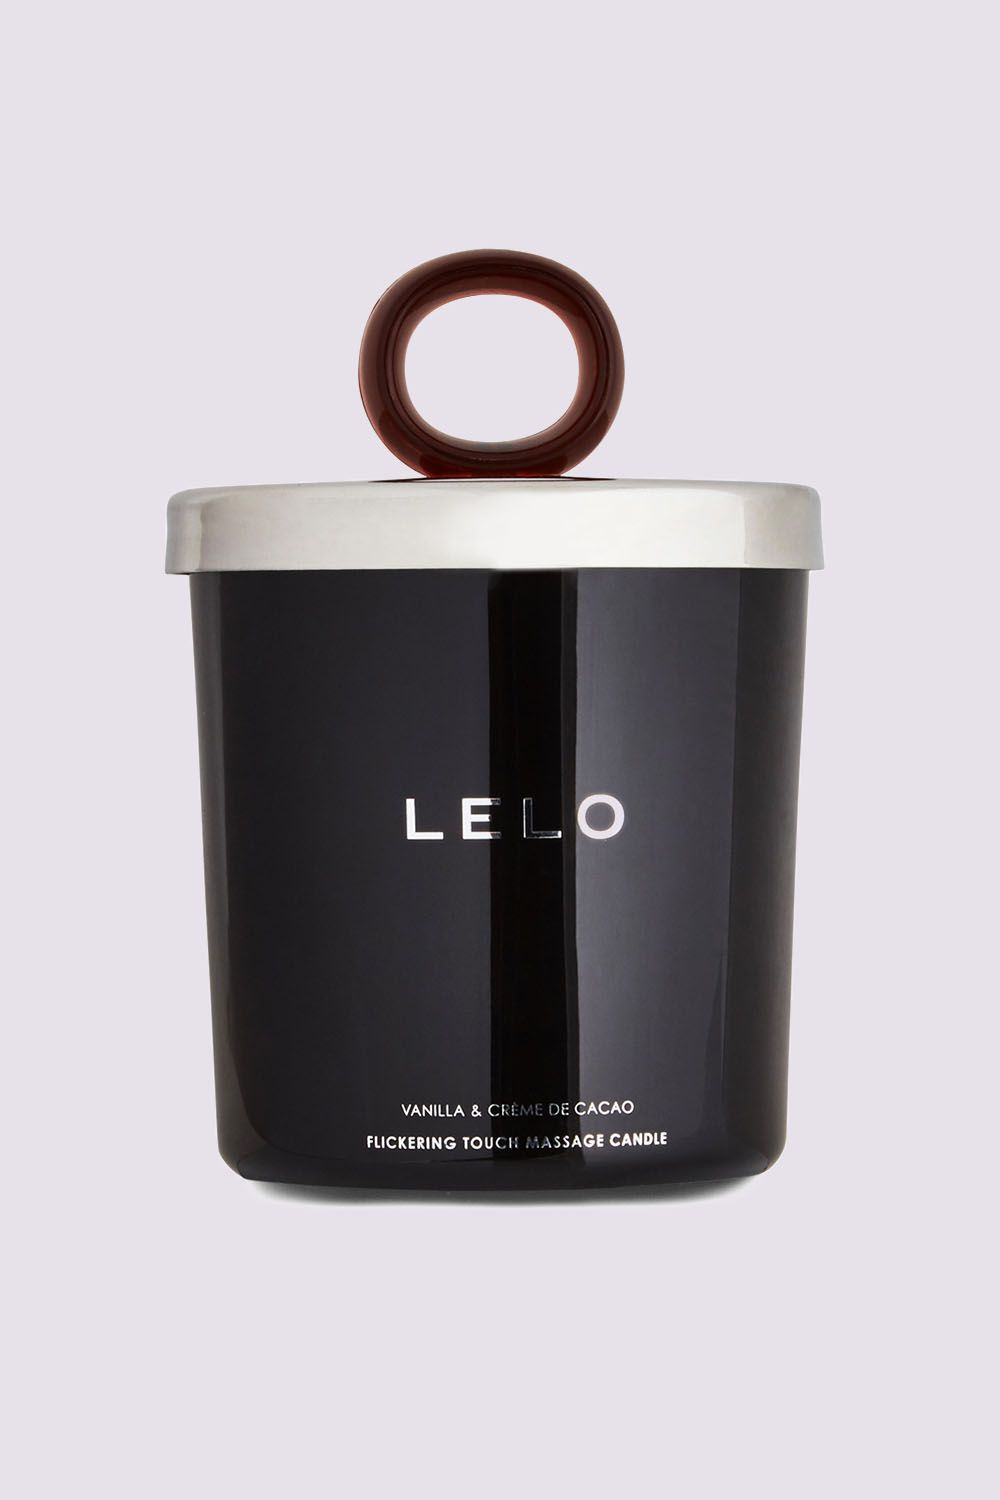 "<p>Lelo's <a href=""http://www.marieclaire.com/sex-love/g1464/best-sex-toys/?slide=4&thumbnails="" target=""_blank"" data-tracking-id=""recirc-text-link"">sex toys</a> always look like verifiable product porn, so it makes sense that their flickering massage candle would look just as chic on the night stand. And they put just as much thought into the ingredients: their candles are all-natural and come in three calming scents: vanilla, snow pea, and a combo of black pepper and pomegranate. </p><p>$35; <a href=""https://www.lelo.com/flickering-touch-massage-candle"" target=""_blank"" data-tracking-id=""recirc-text-link"">lelo.com</a>.<span class=""redactor-invisible-space"" data-verified=""redactor"" data-redactor-tag=""span"" data-redactor-class=""redactor-invisible-space""></span><br></p>"